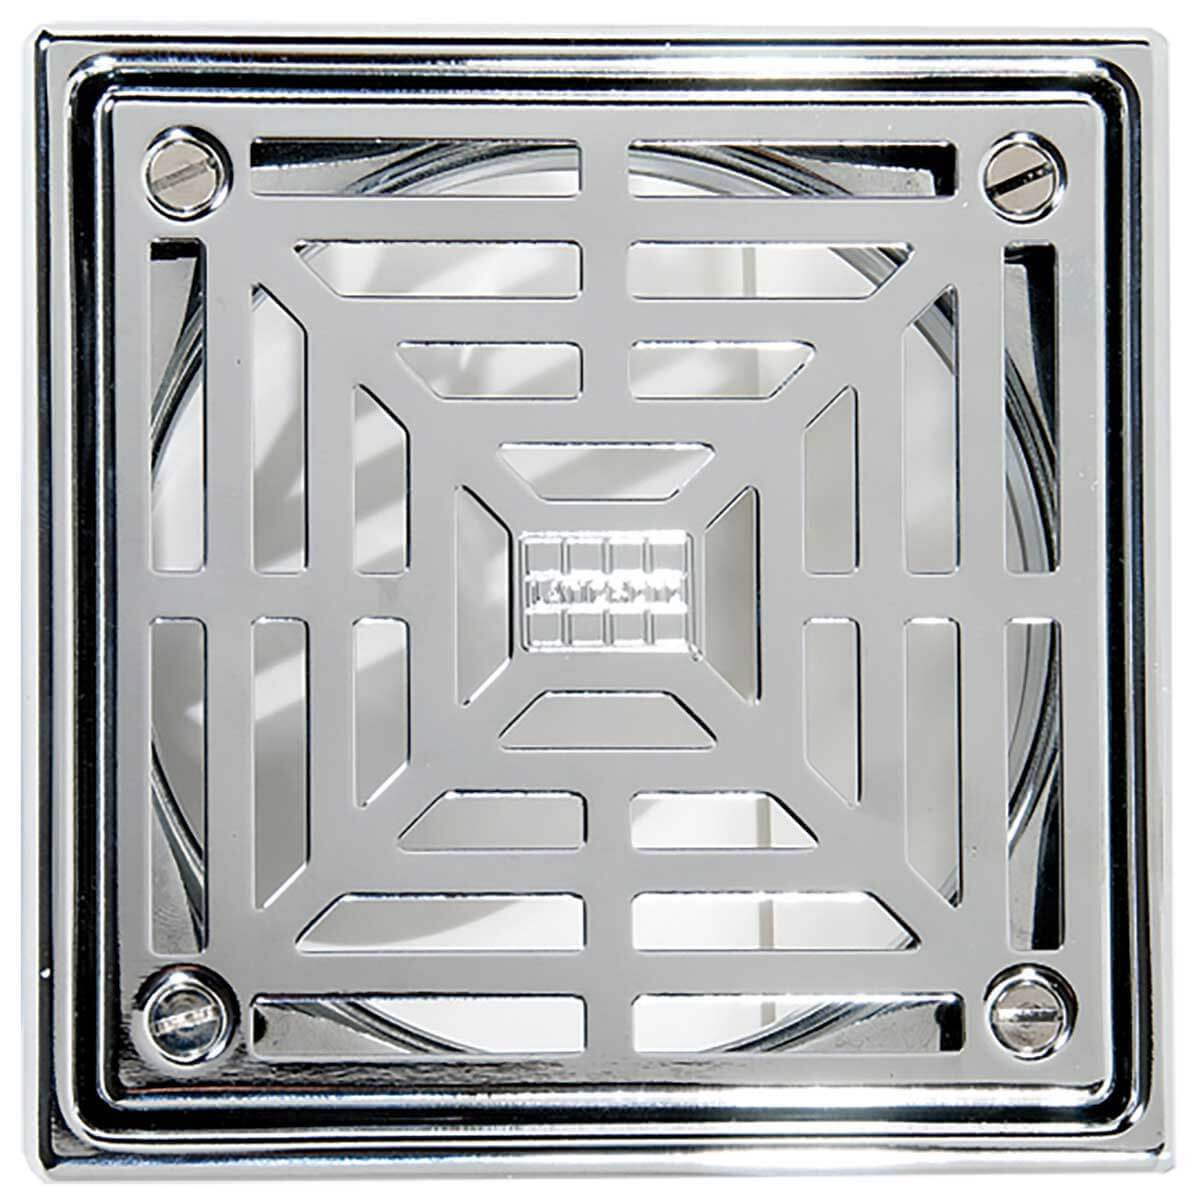 Polished Stainless Steel Hydro Ban Bonding Drain